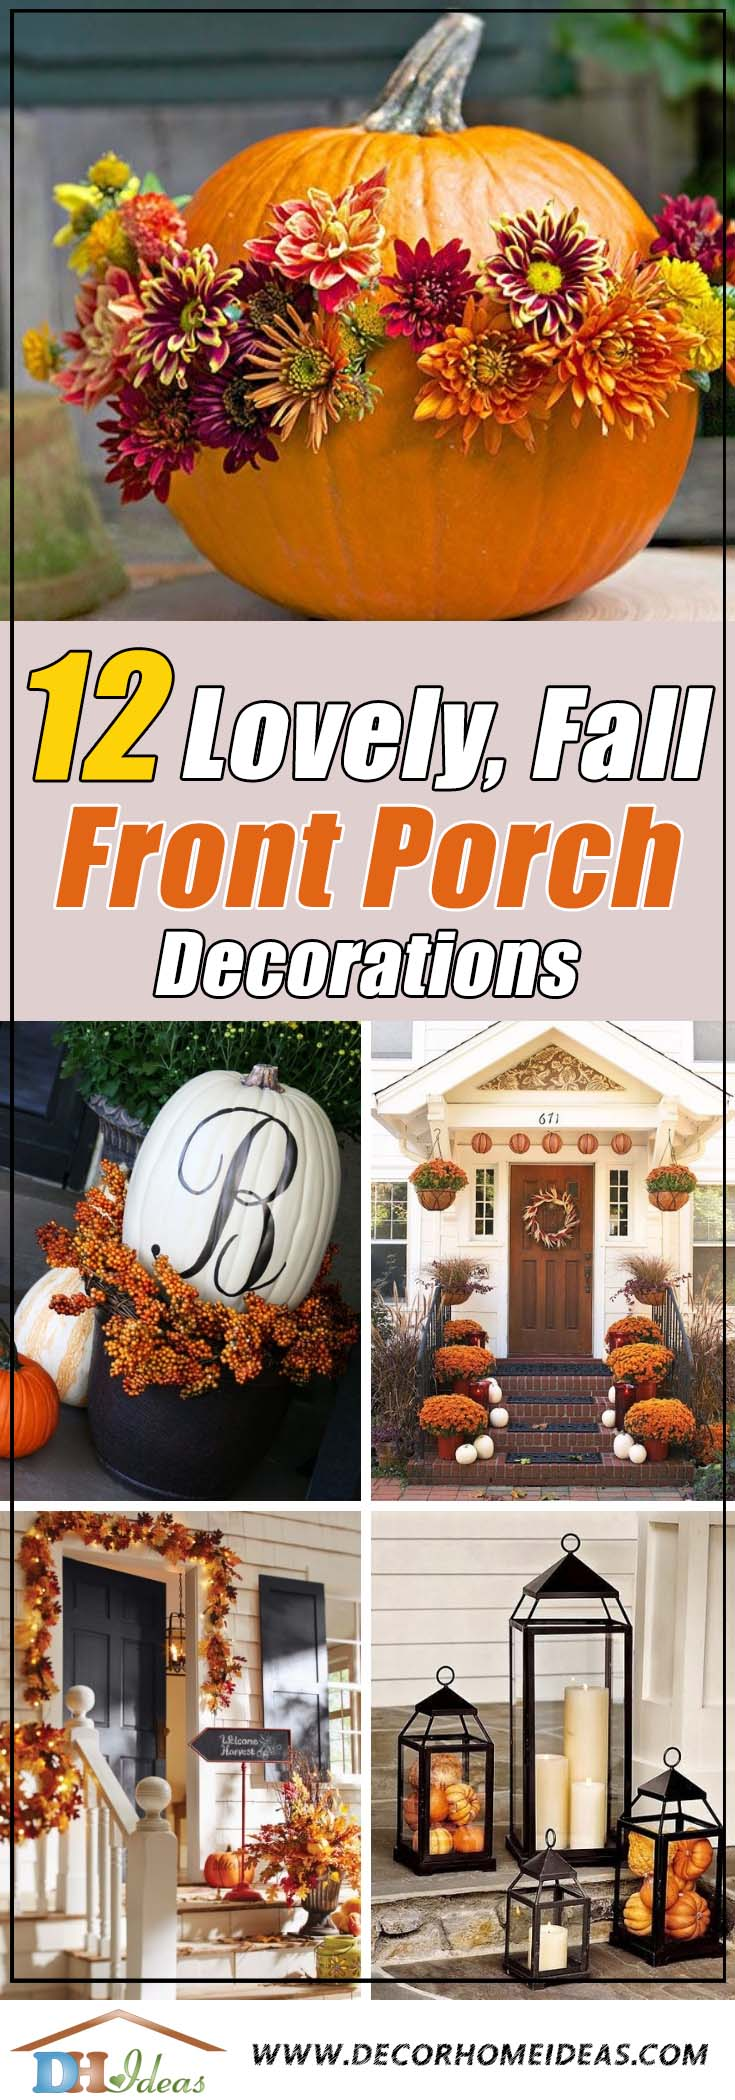 15 Lovely Fall Front Porch Decorating Ideas | Inspire yourself with some great fall front door and porch decor ideas #frontdoor #porch #decor #falldecor #pumpkin #autumn #decoratingideas #homedecor #decorhomeideas